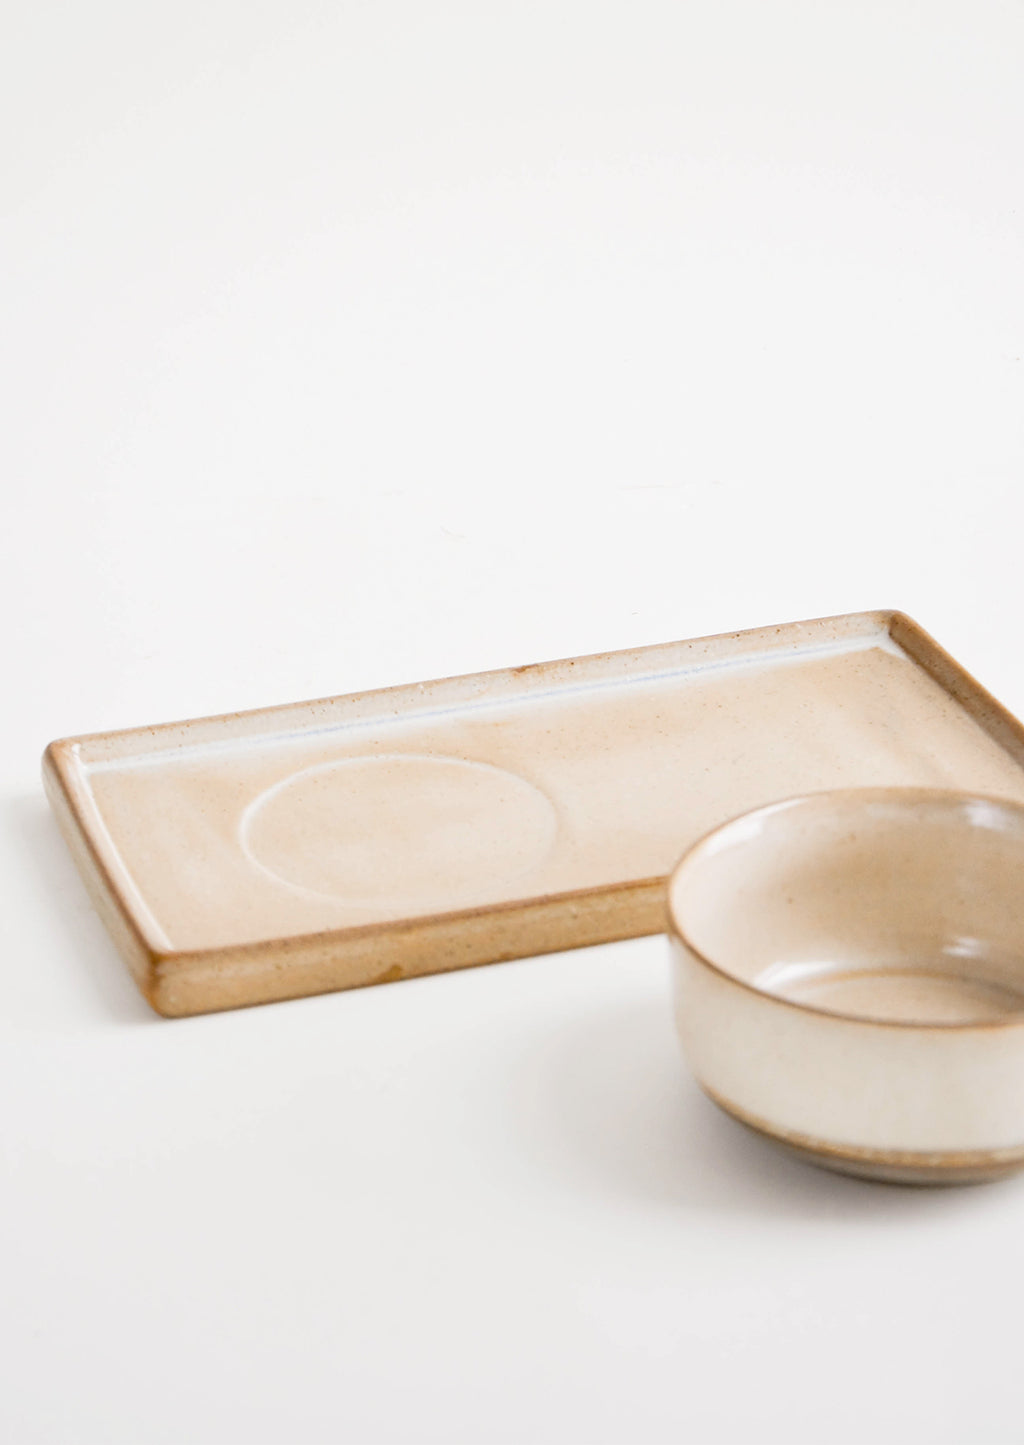 2: Two Piece Beige Ceramic Serving Set with Rectangular Tray with Inset for Coordinating Bowl - LEIF